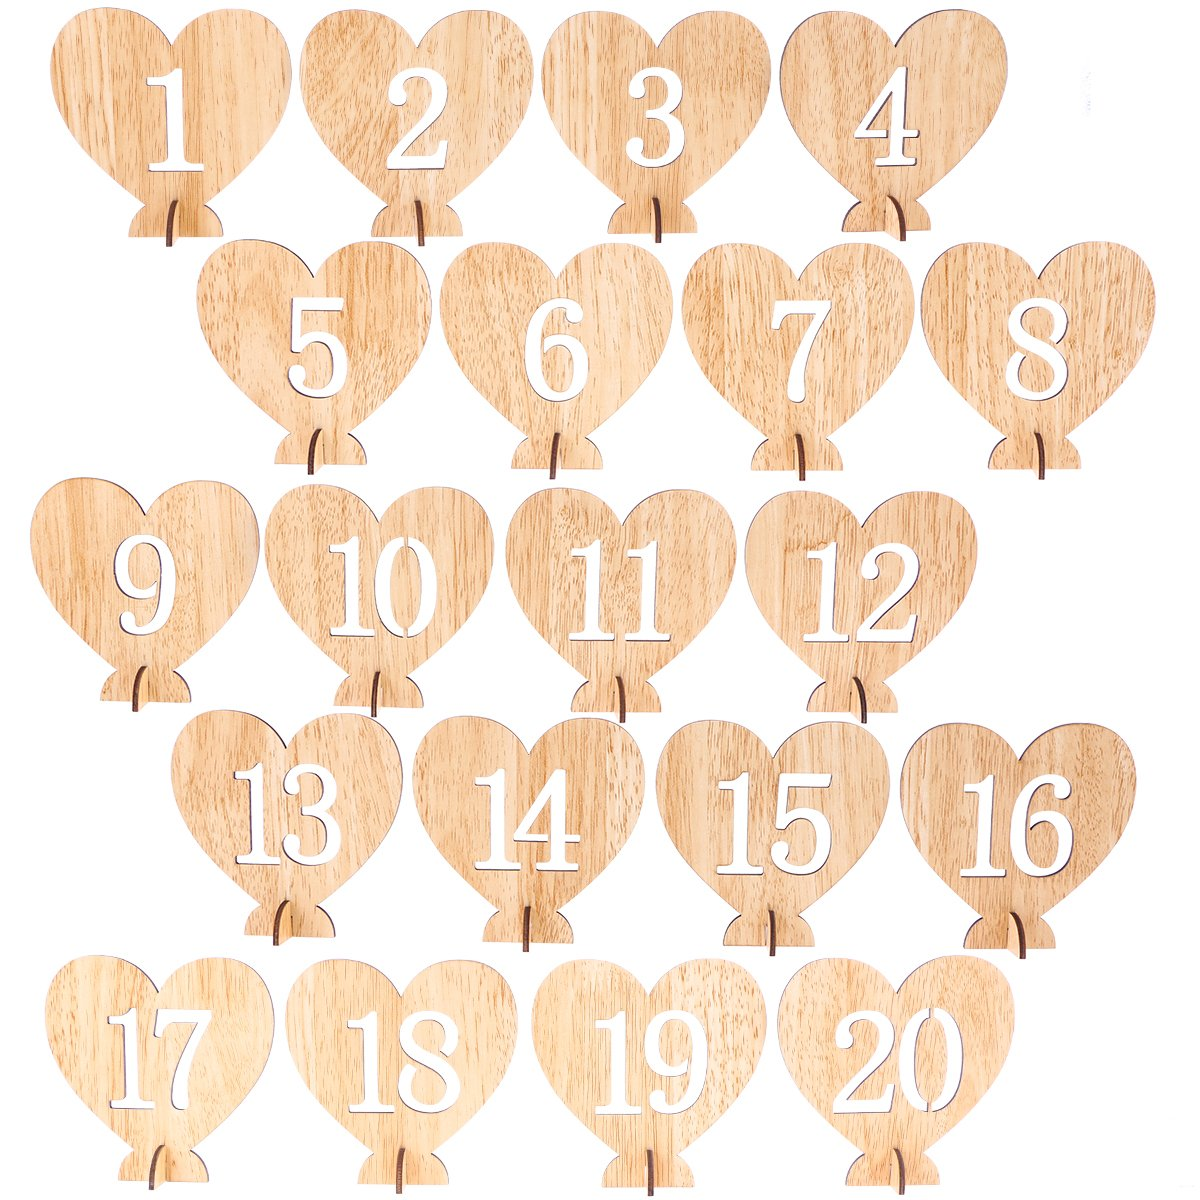 BESTOYARD 20pcs 1-20 Wooden Table Numbers with Holder Base Heart Shape Table Numbers for Wedding Table Decoration